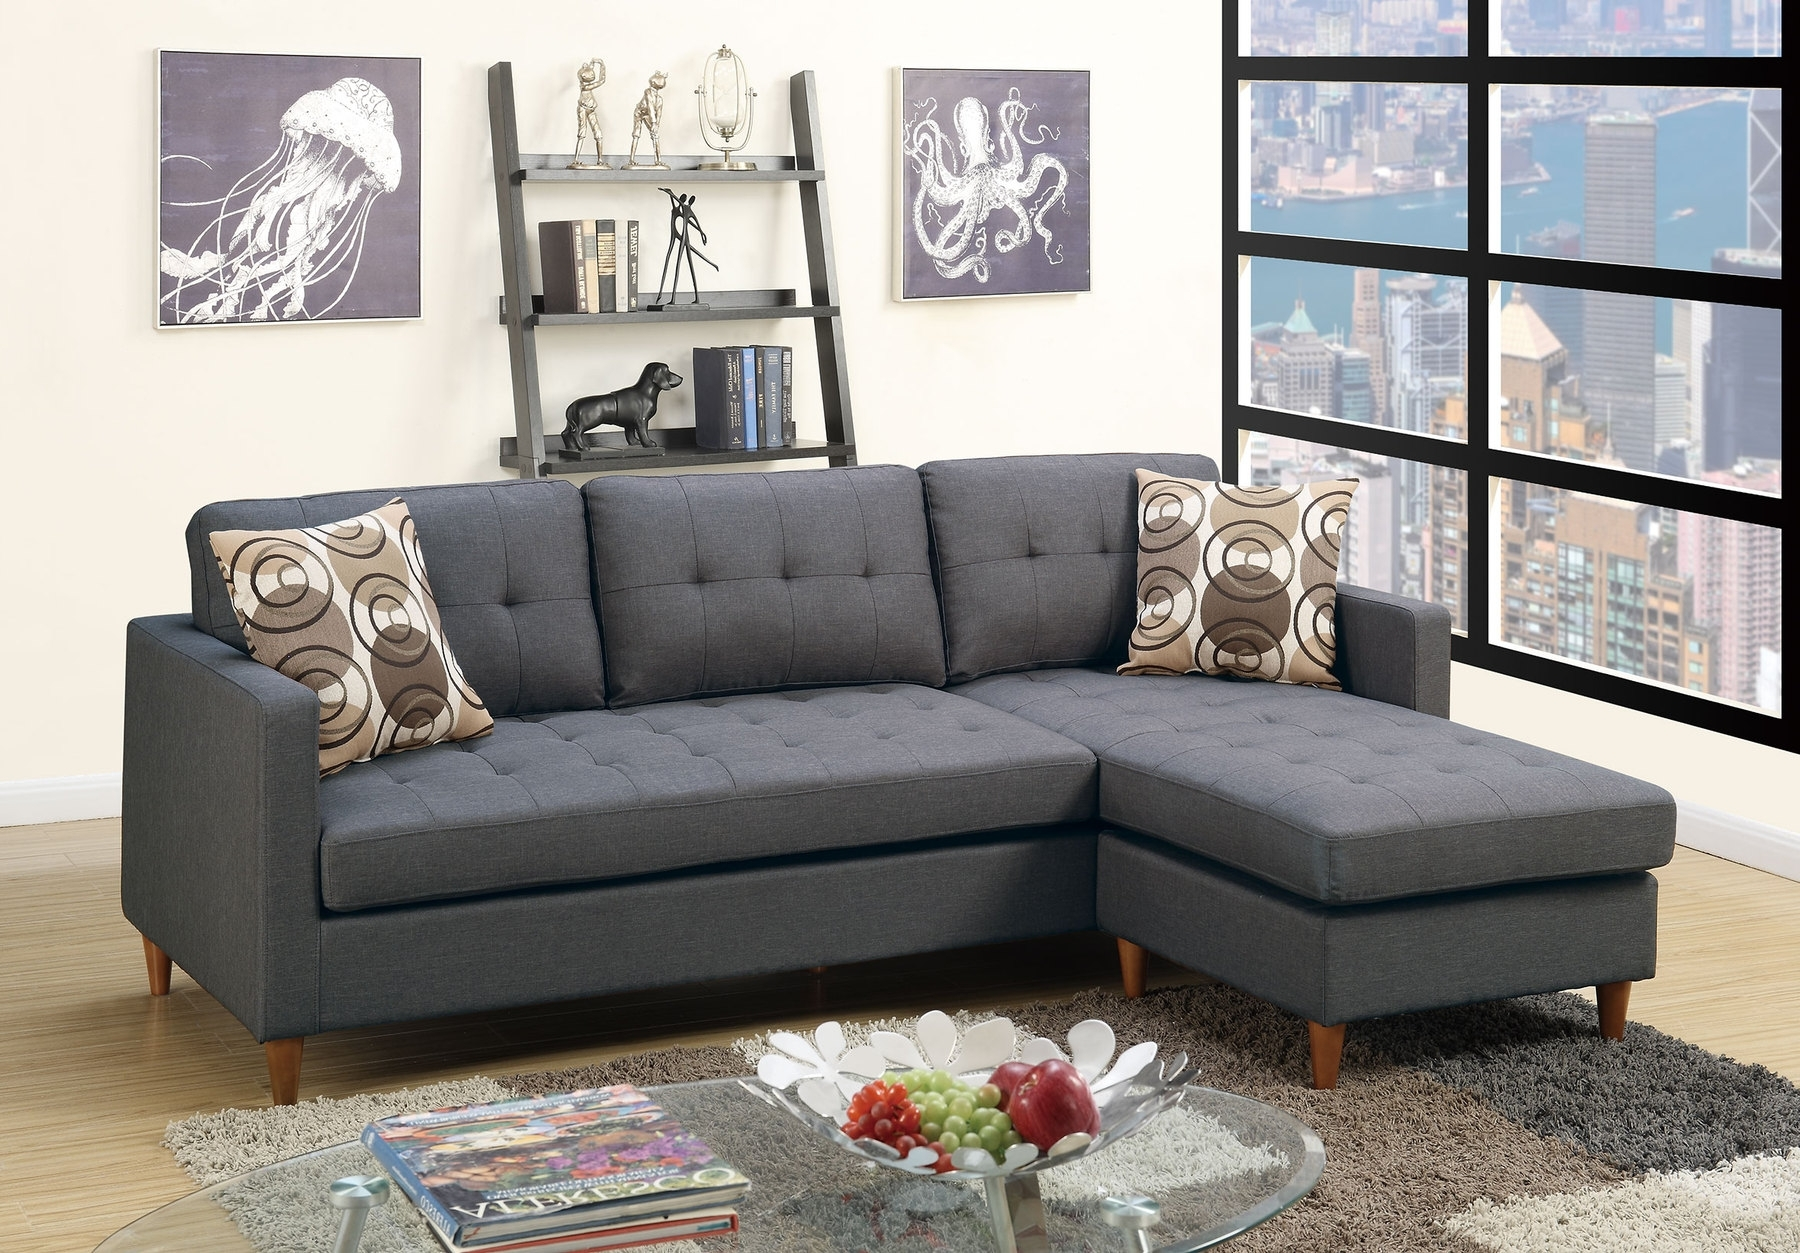 2018 P7094 Sectional Sofa 7094 Poundex Sectional Sofas At Comfyco In Gray Sectionals With Chaise (View 14 of 15)